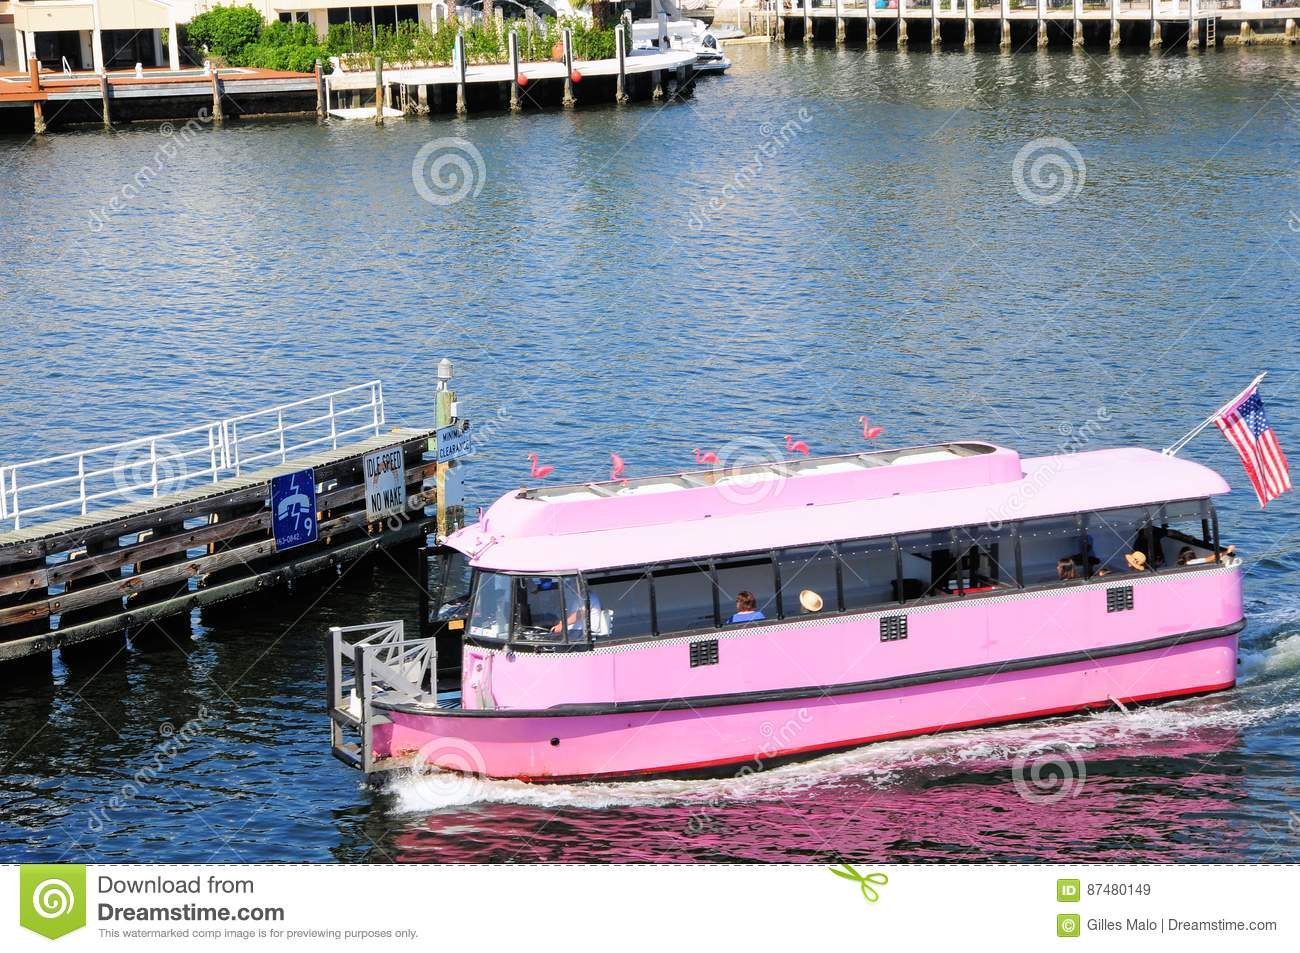 Arrival of pink water taxi, South Florida